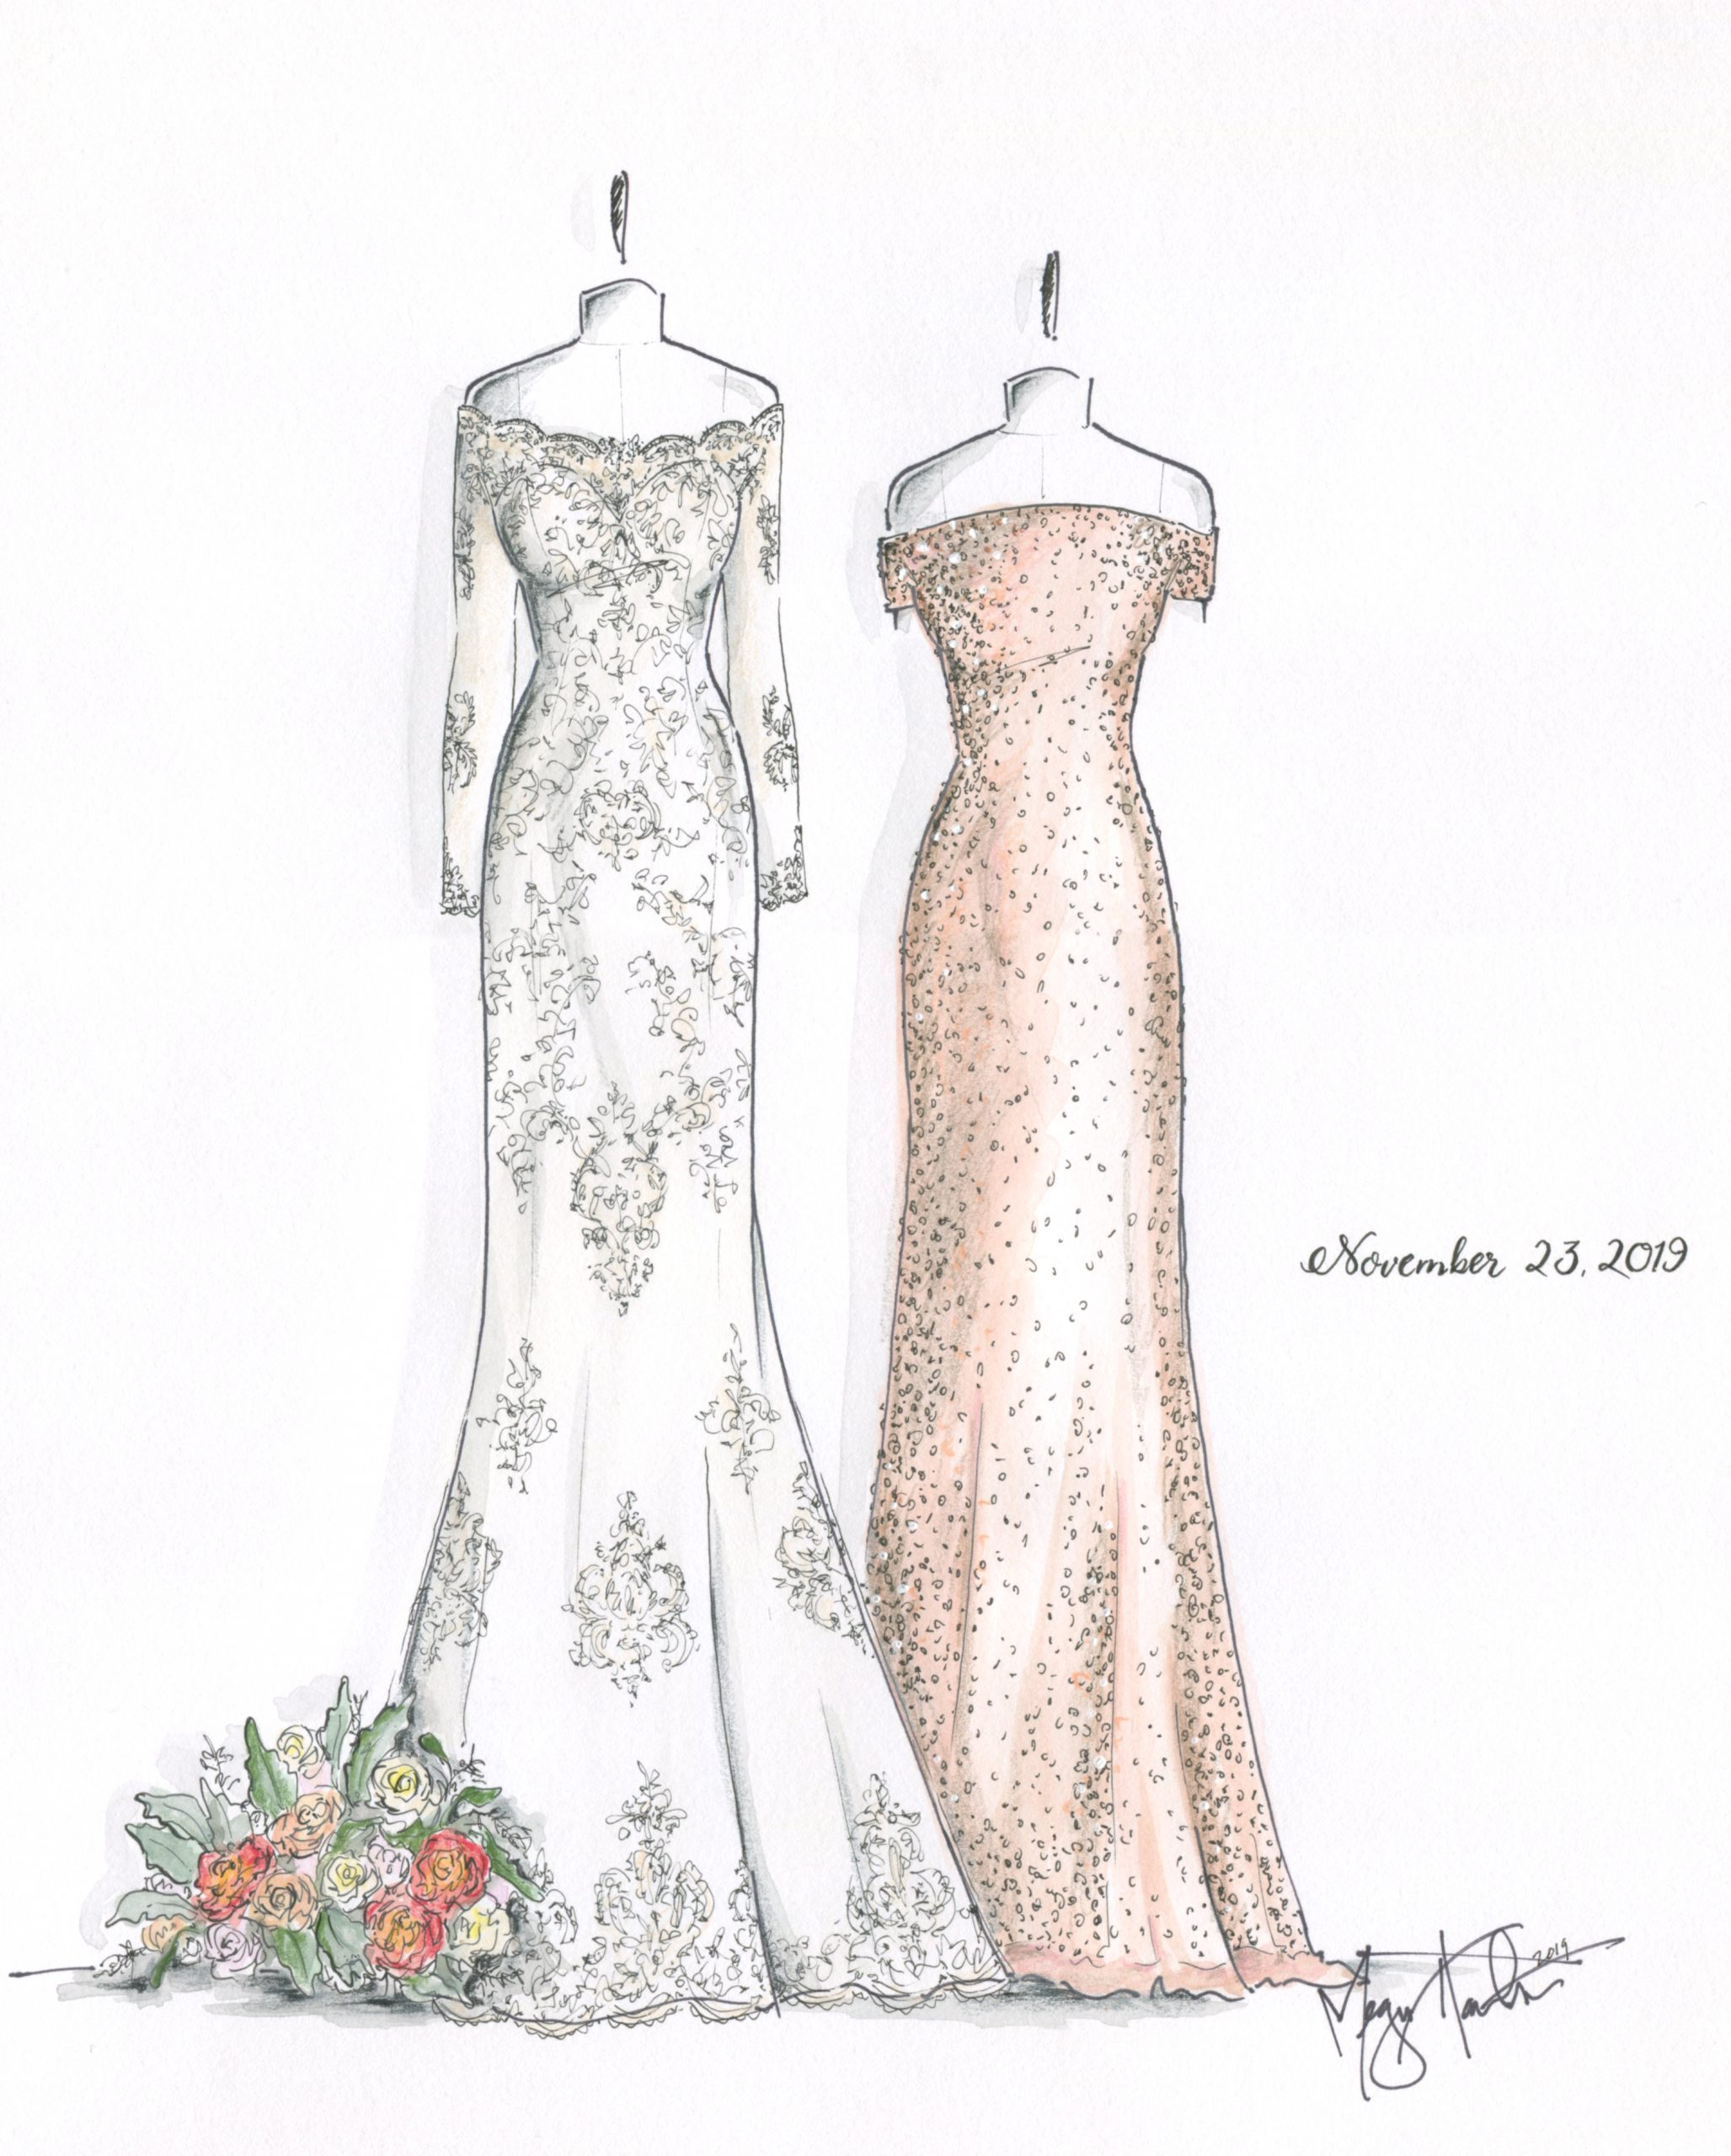 A bridesmaid and wedding dress from November 23, 2019. Illustrated by Megan Hamilton Weddings. Featured on Dream Weddings.